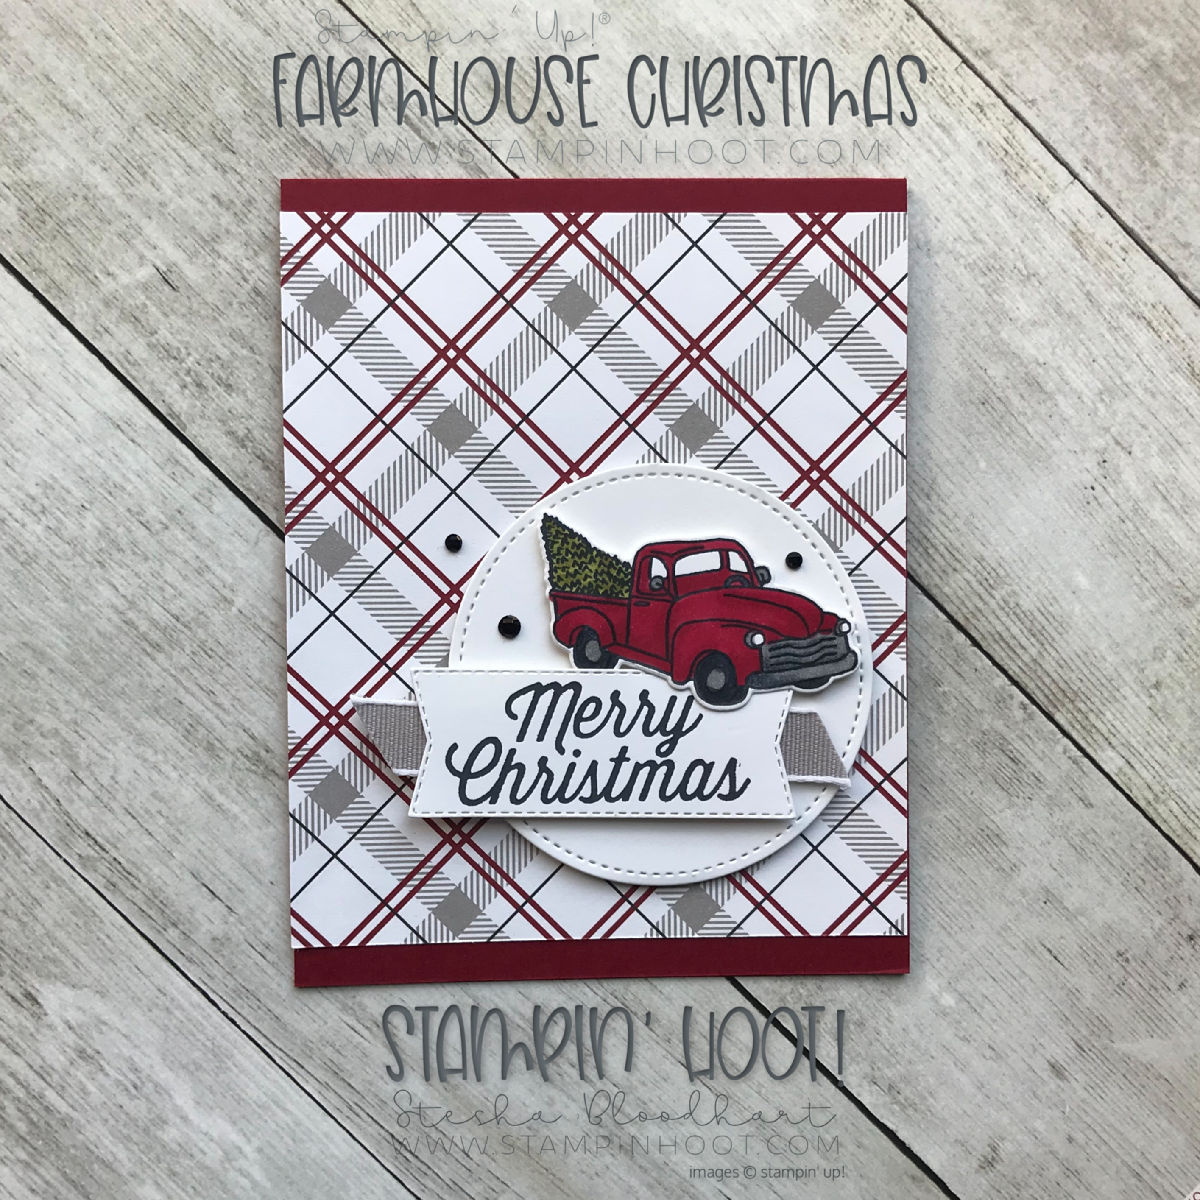 Farmhouse Christmas Christmas Card by Stesha Bloodhart, Stampin' Hoot! Free Tutorial! #steshabloodhart #stampinhoot